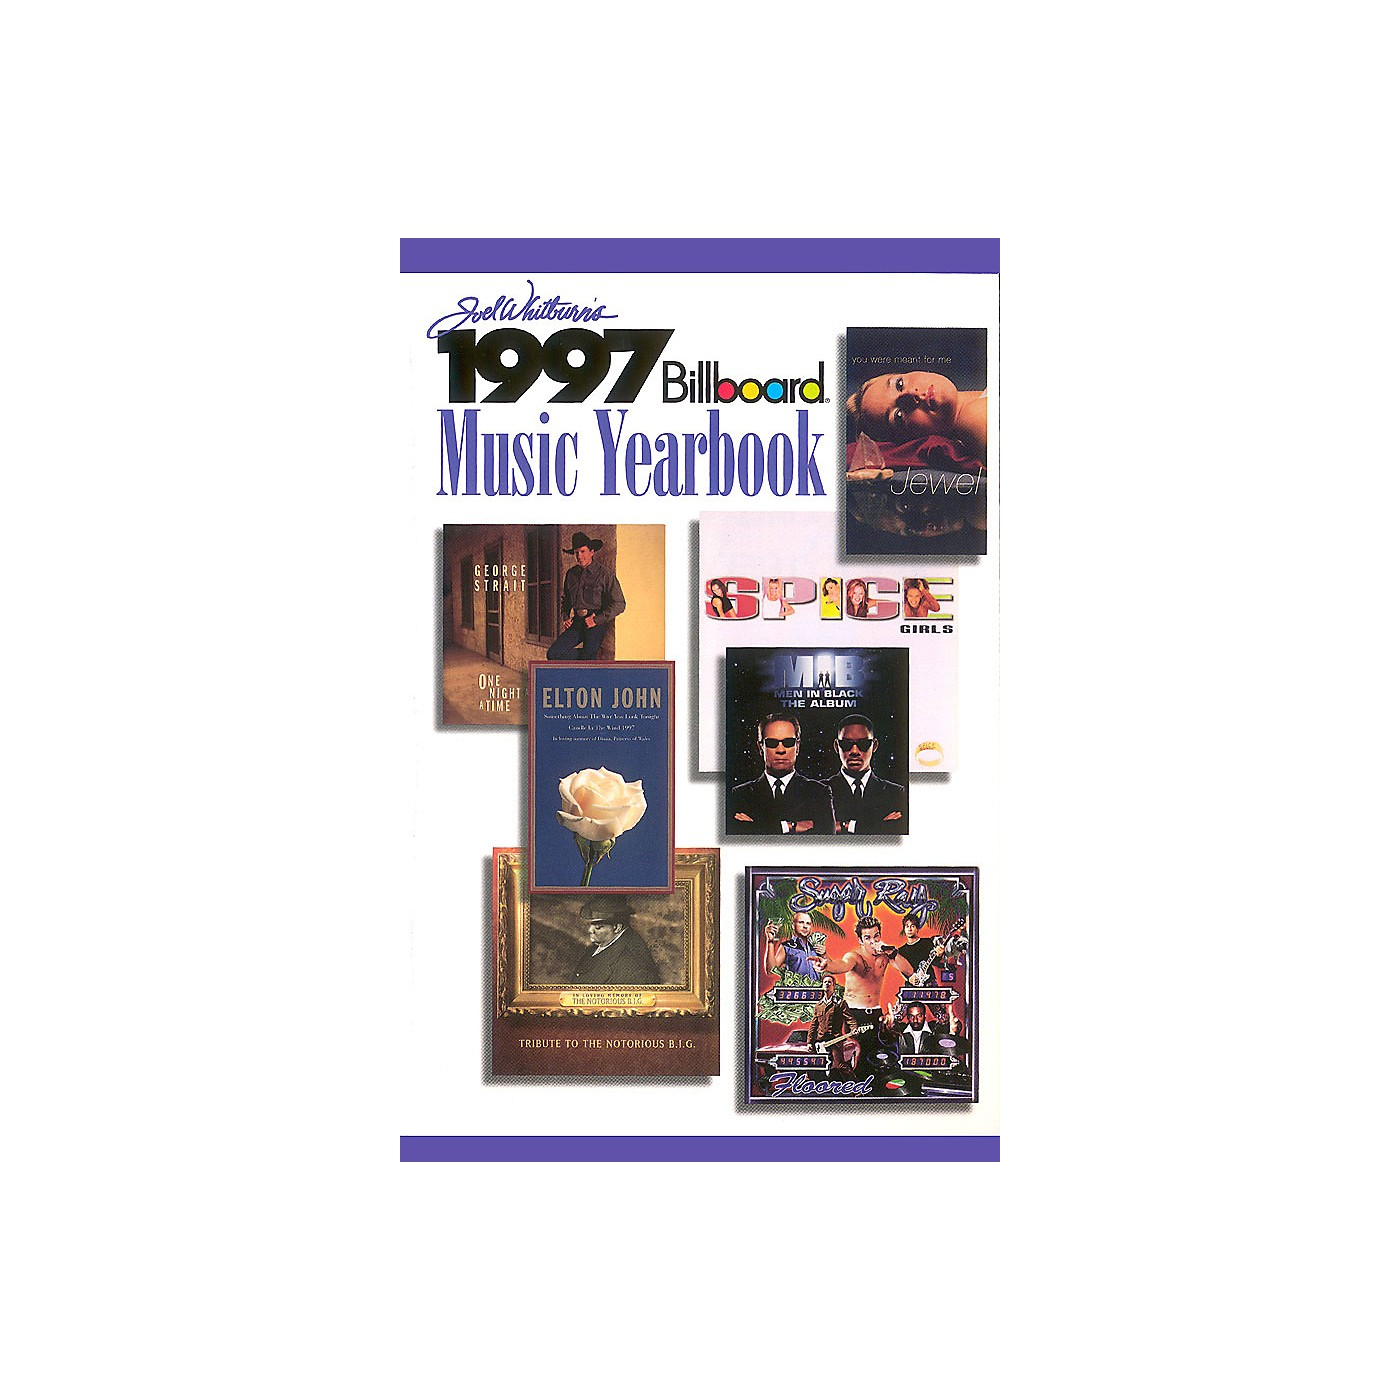 Record Research 1997 Billboard Music Yearbook Book Series Written by Joel Whitburn thumbnail